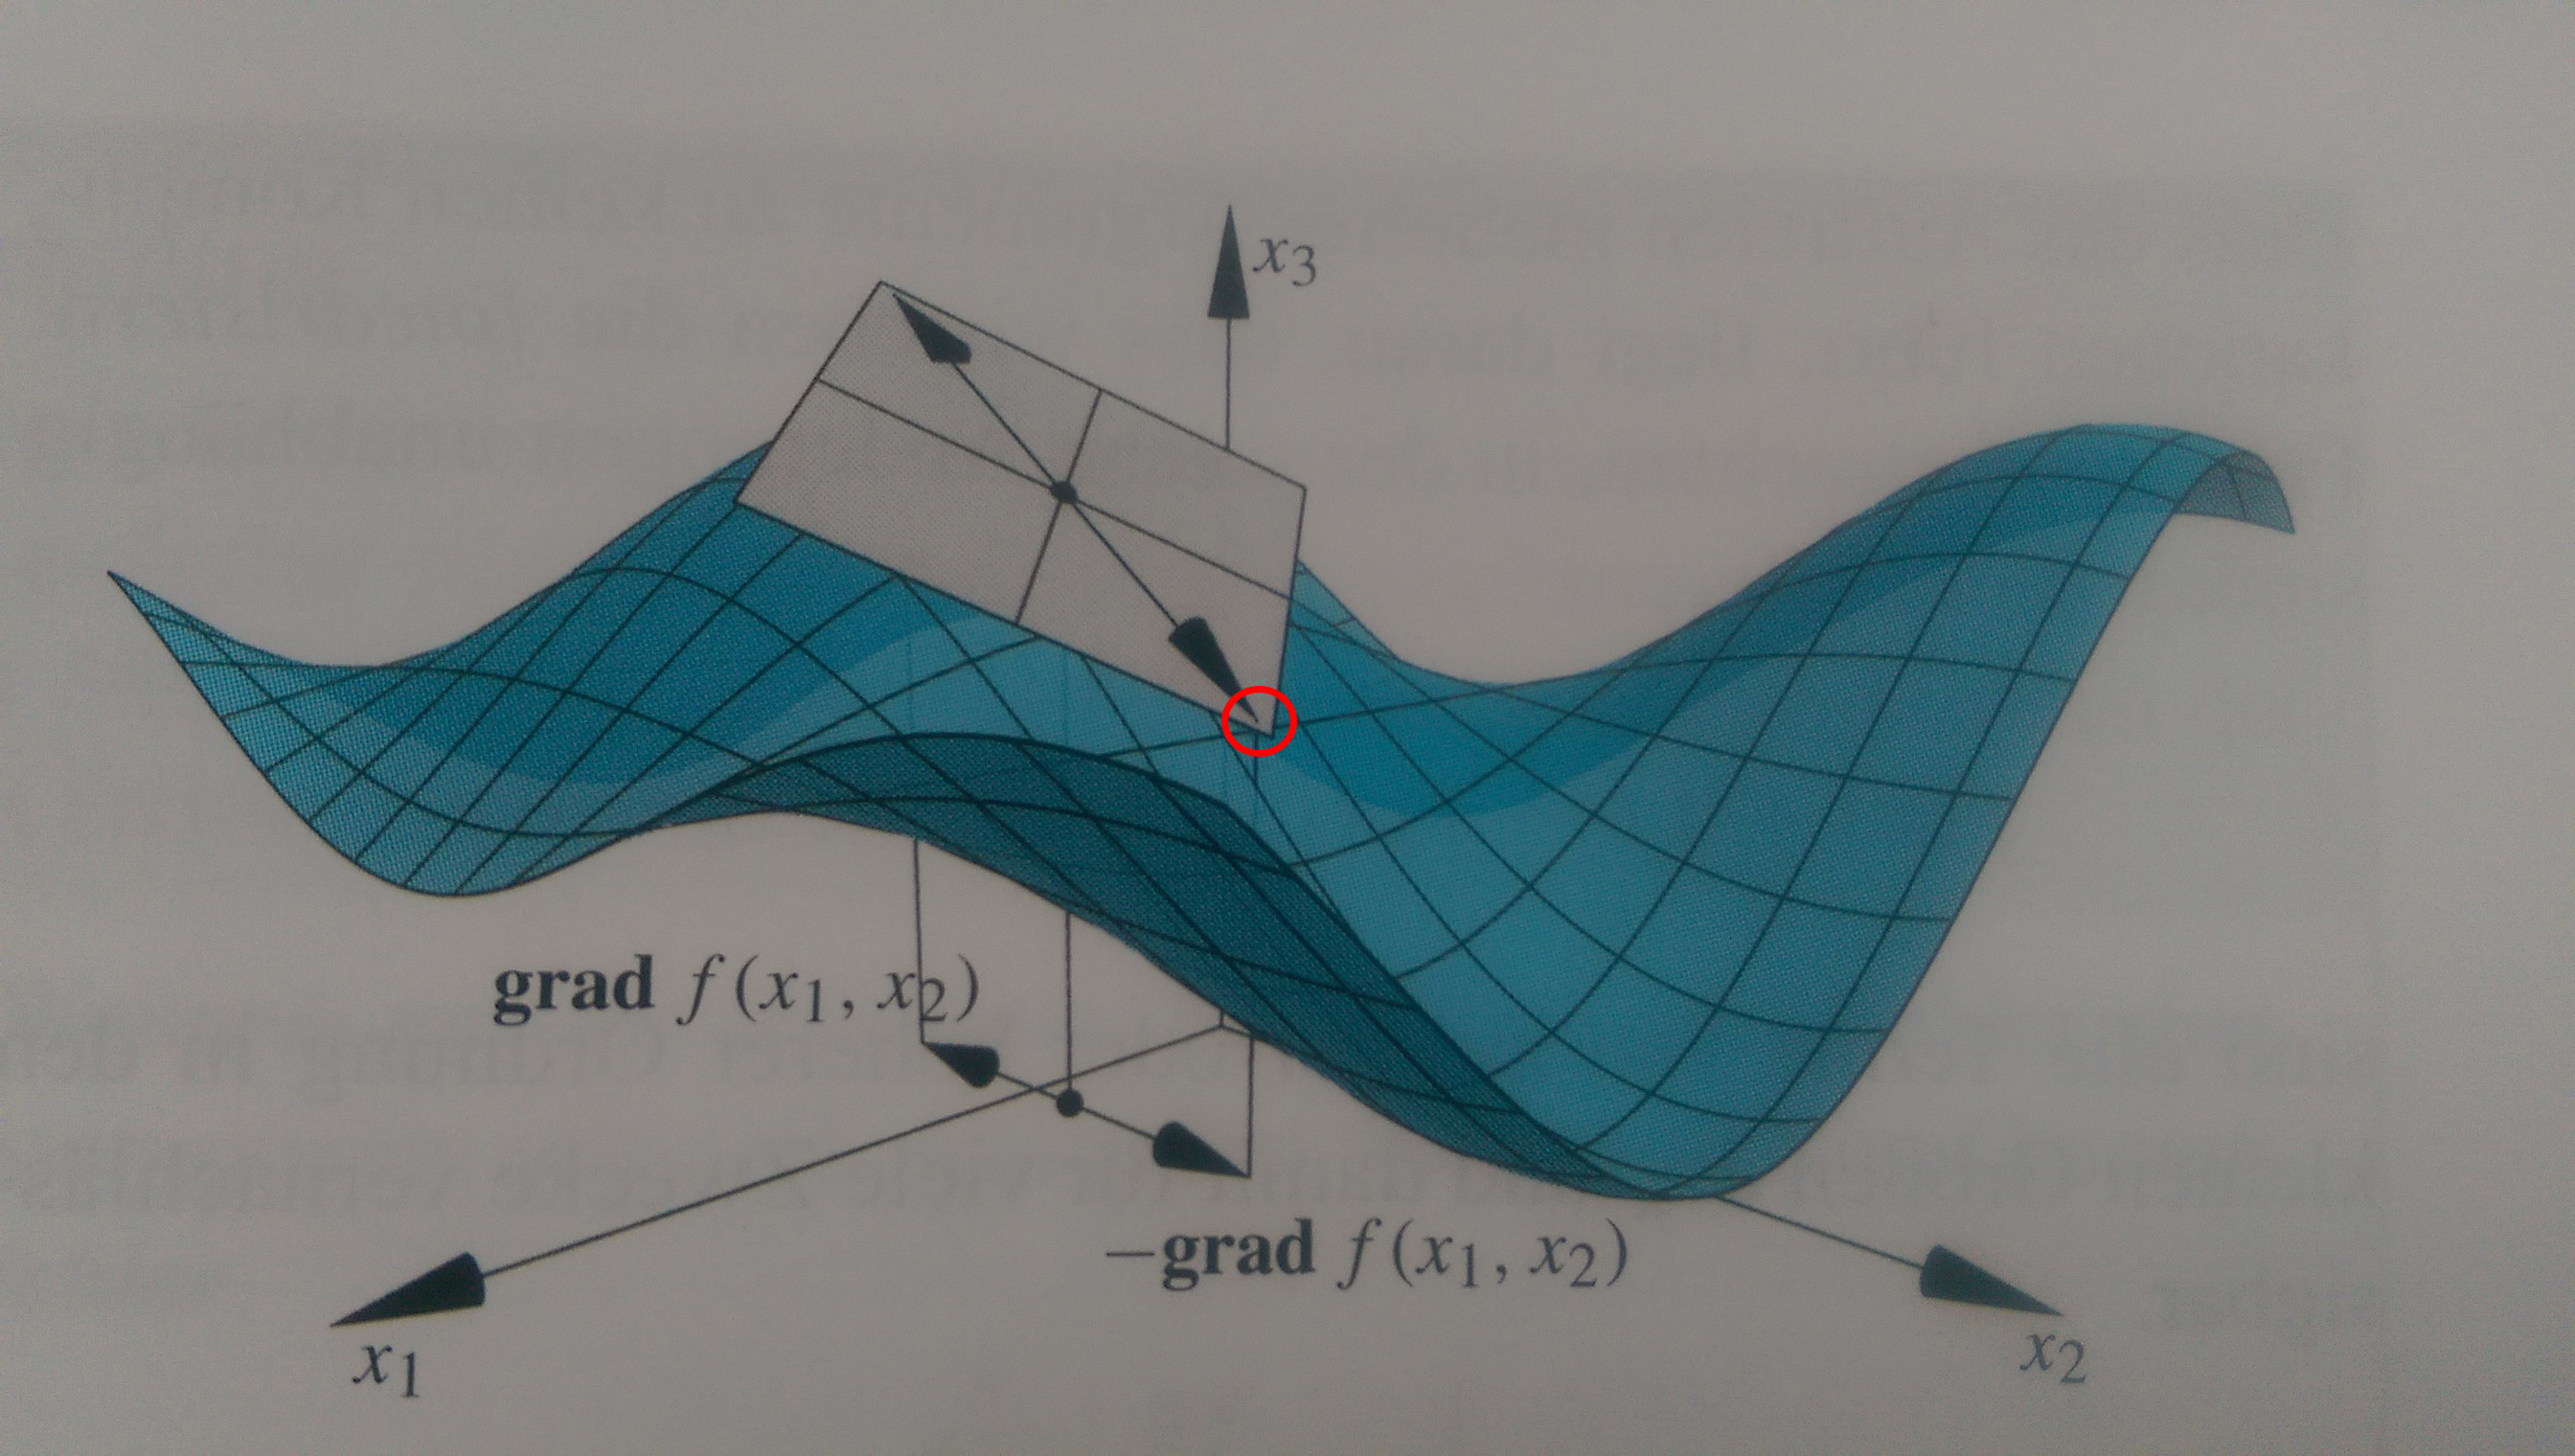 2688x1520 Calculus And Analysis